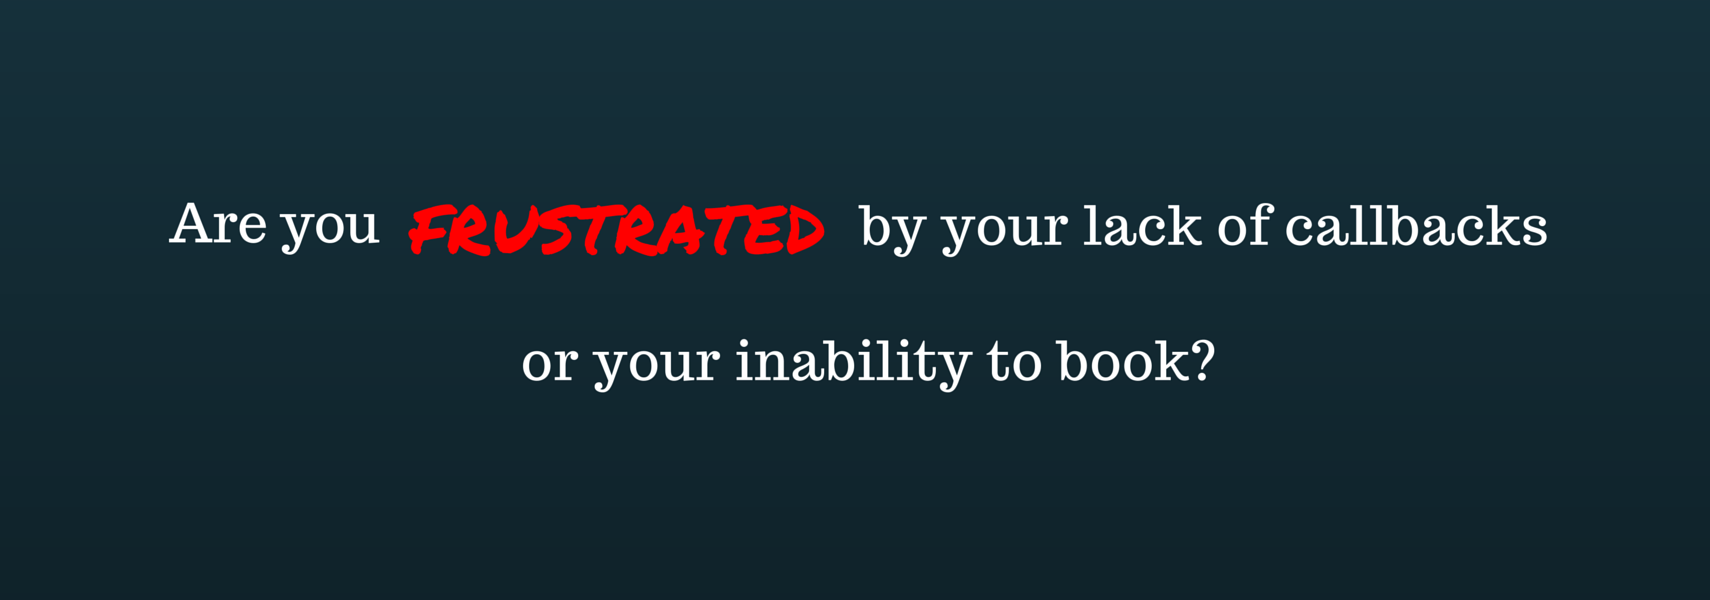 Are you frustrated by your lack of callbacks or you're inability to book?